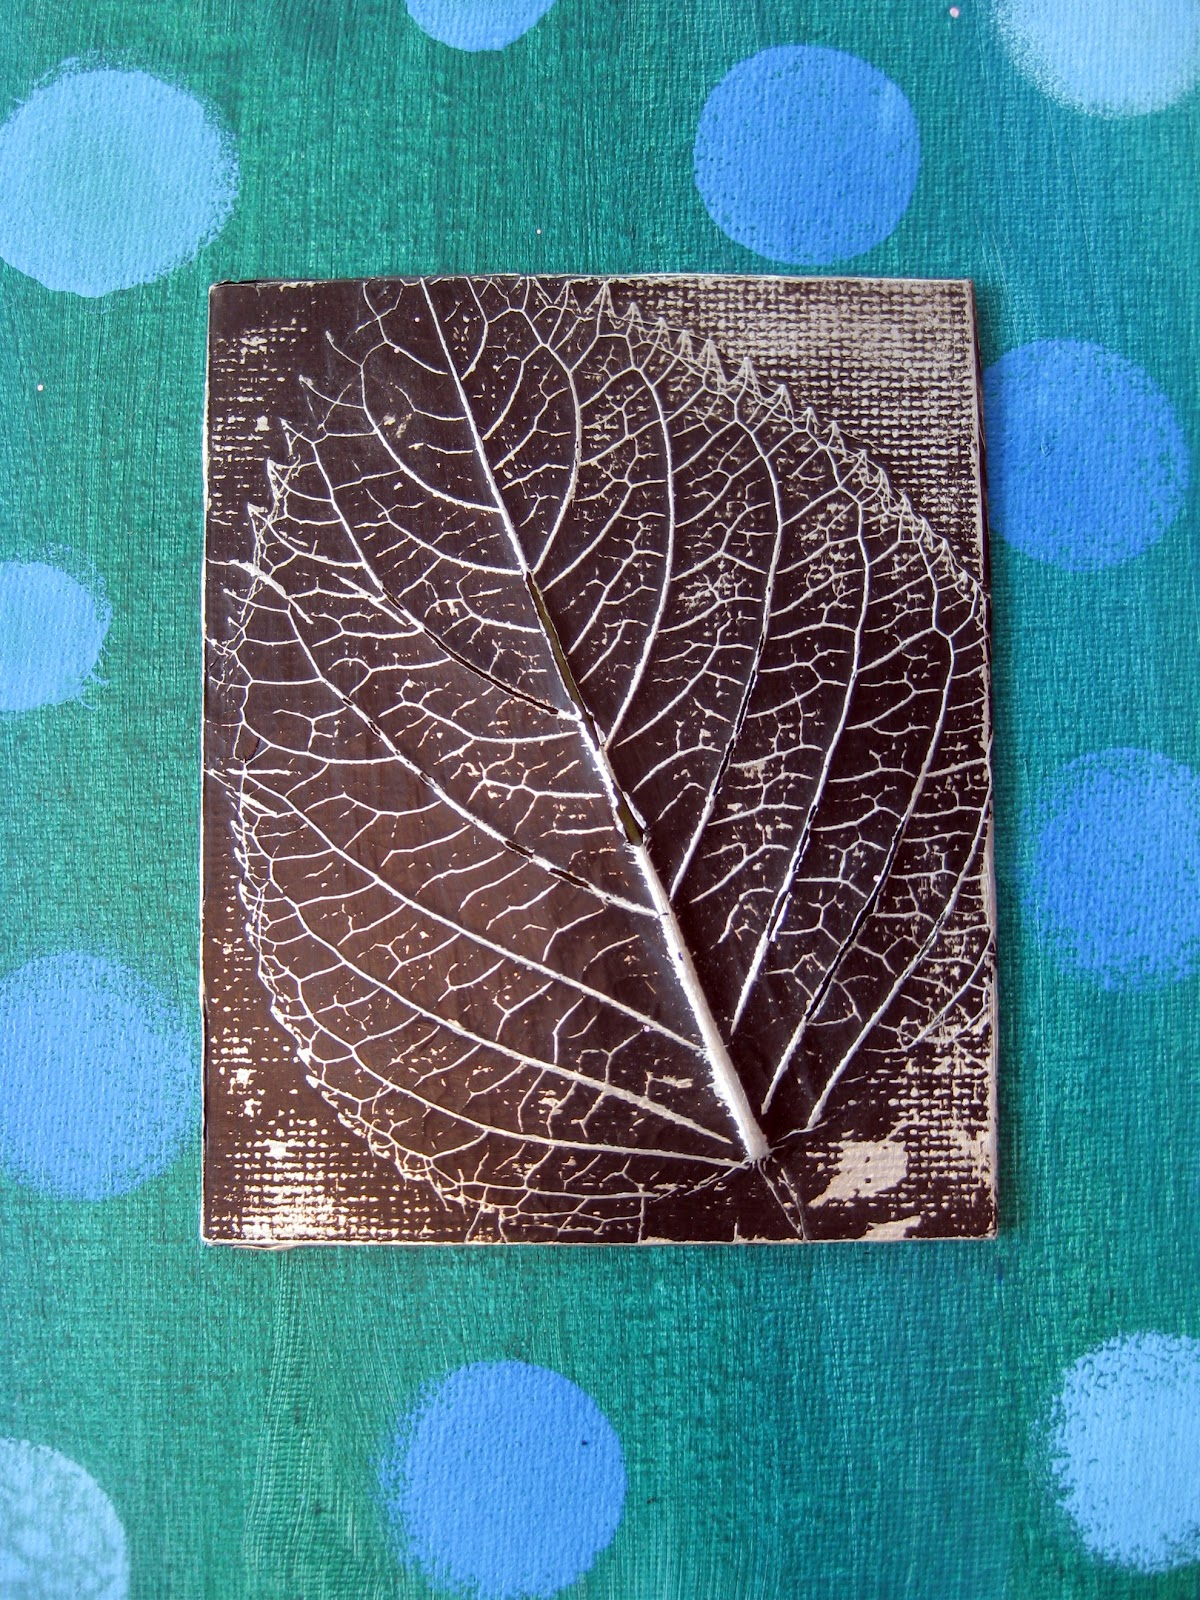 Acrylic Paint For Wall Murals Cassie Stephens In The Art Room Leaf Relief